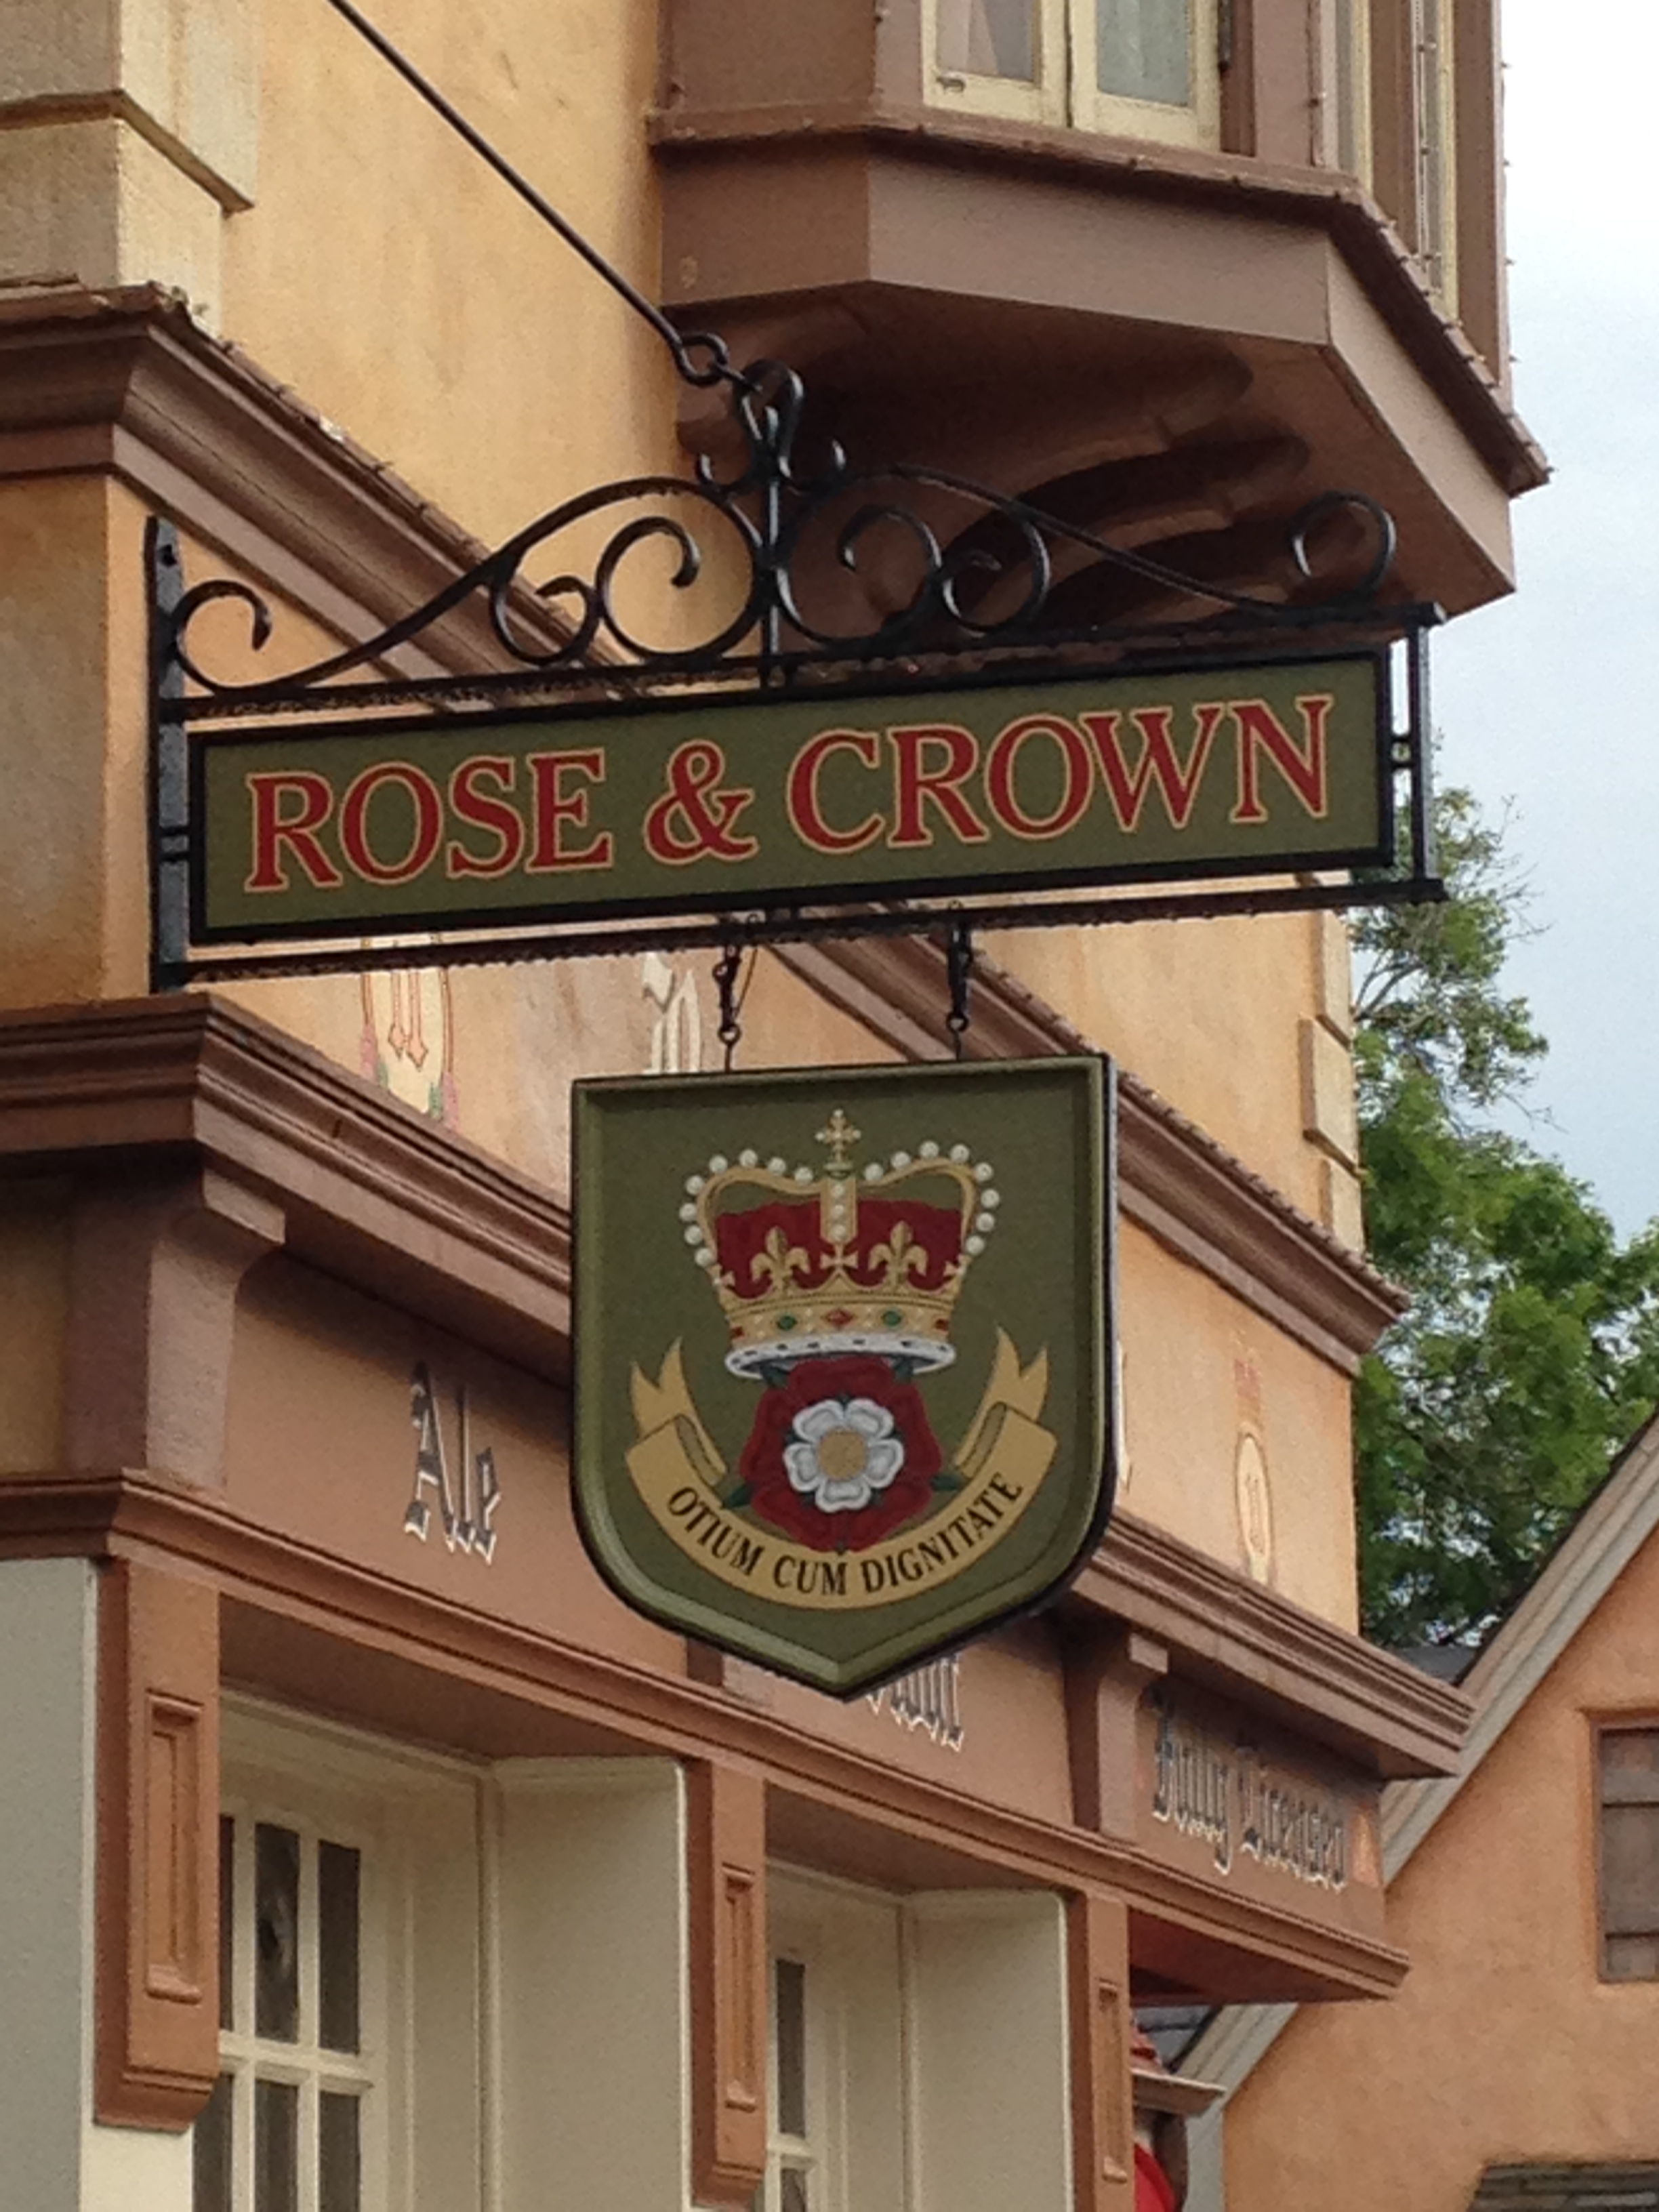 Dining at Disney World: Rose & Crown Pub & Dining Room